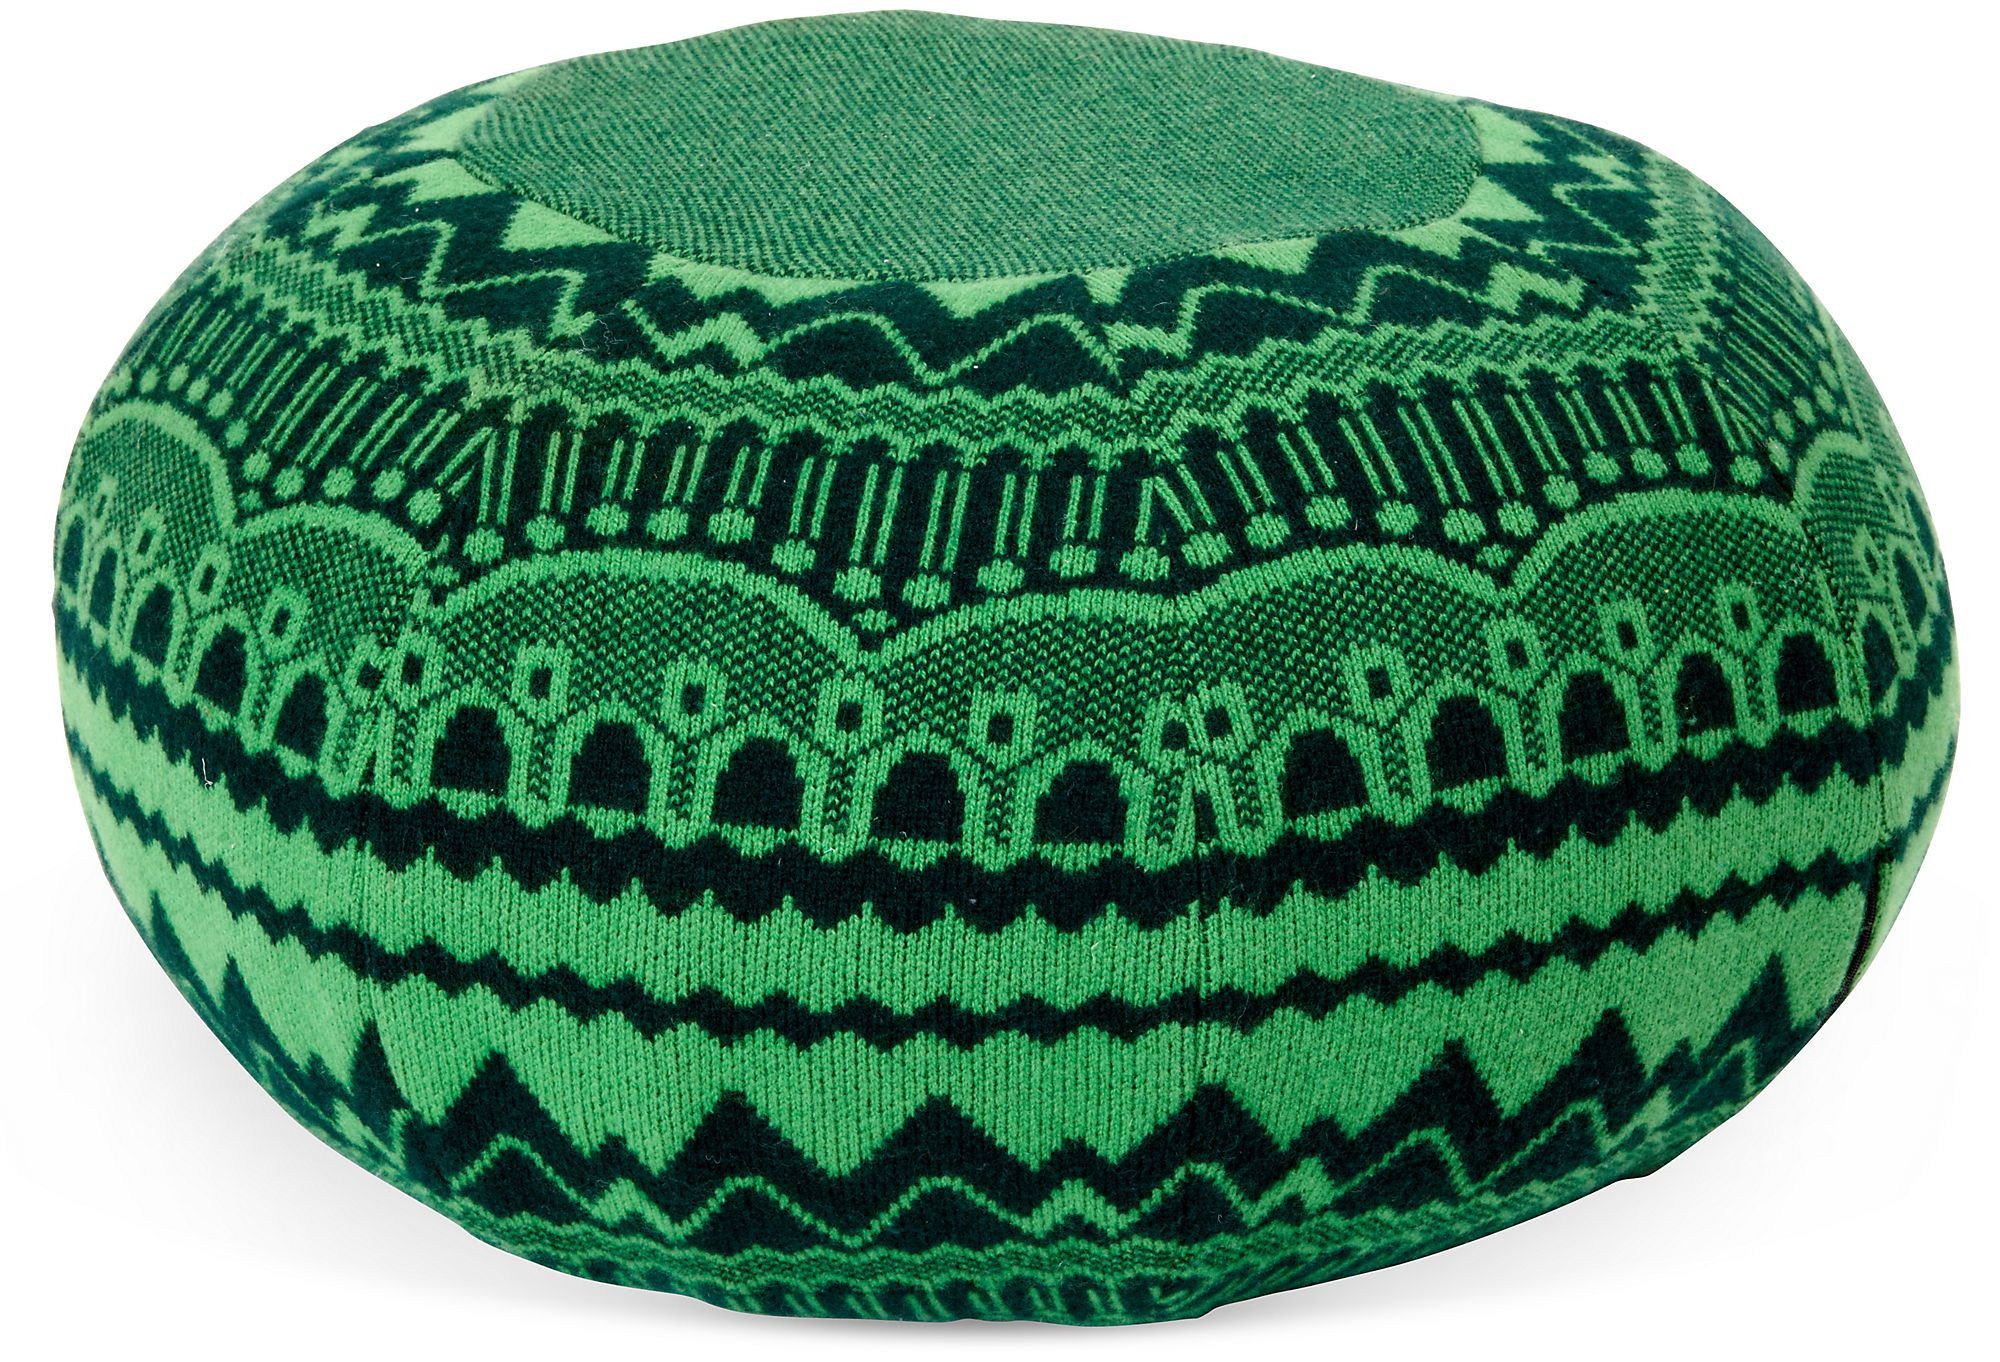 One Kings Lane - Lawson-Fenning - Donna Wilson Knitted Pouf ...